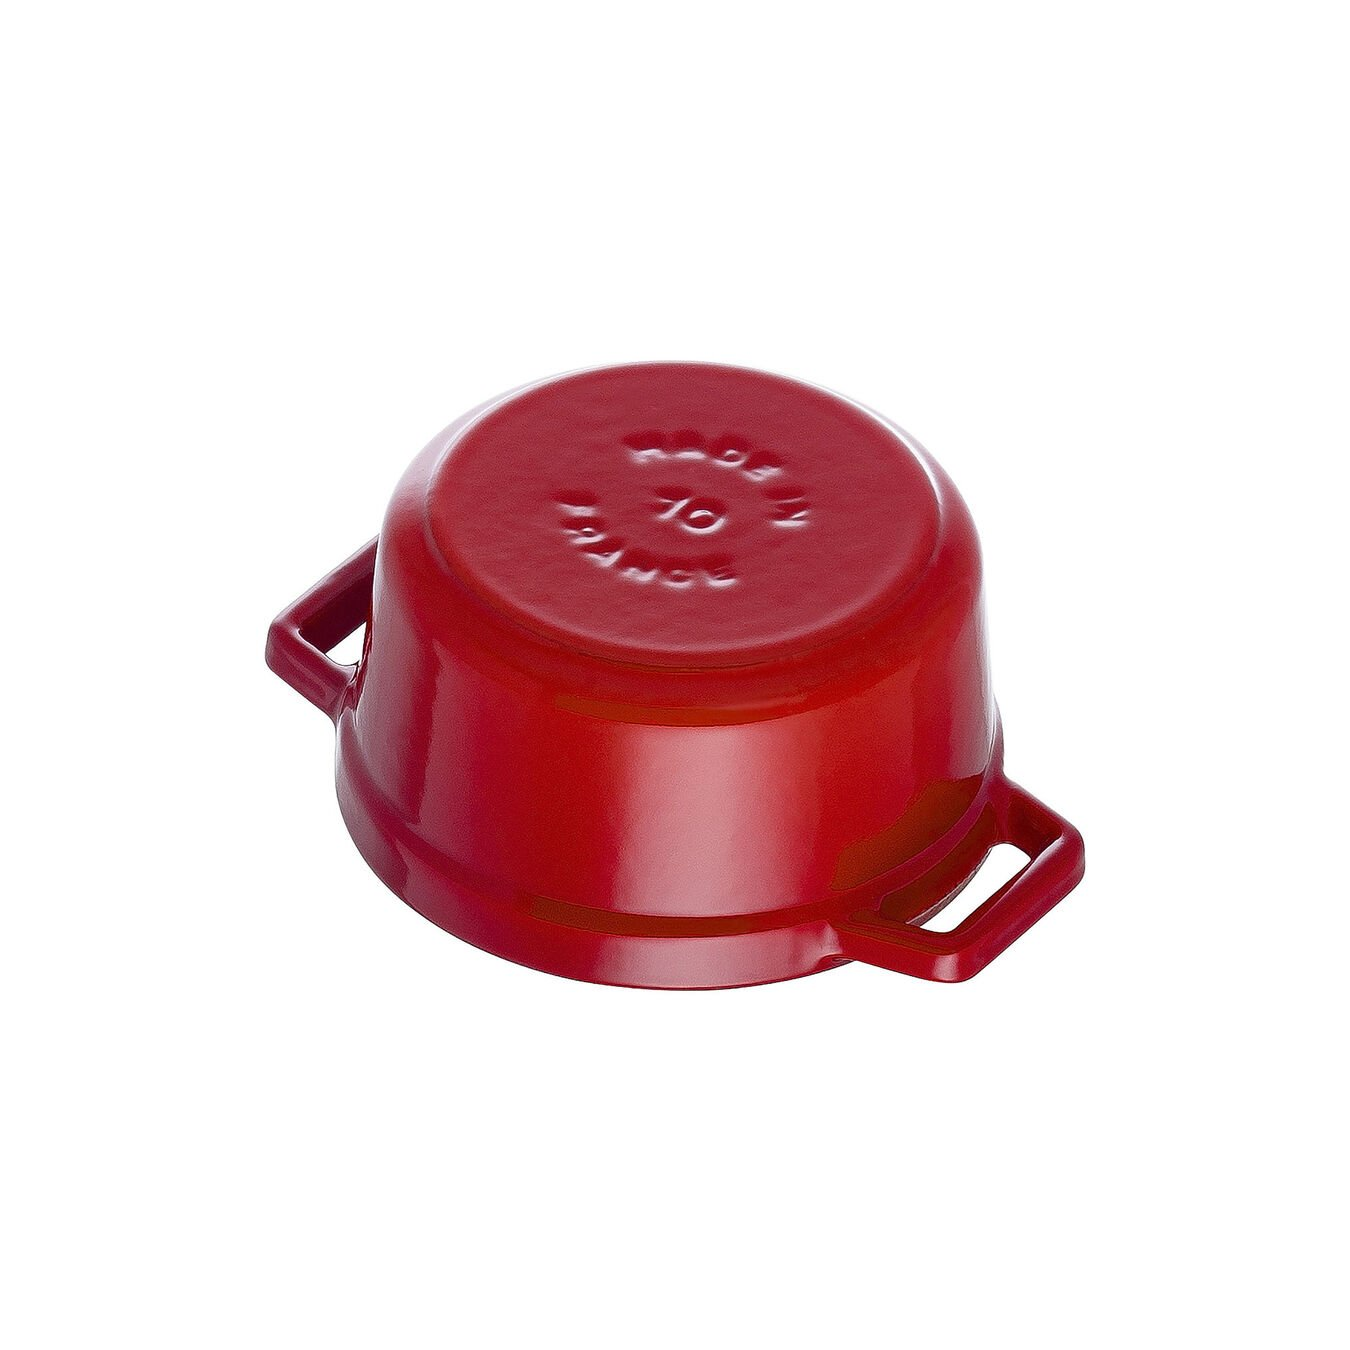 Mini Cocotte 10 cm, rund, Kirsch-Rot, Gusseisen,,large 4